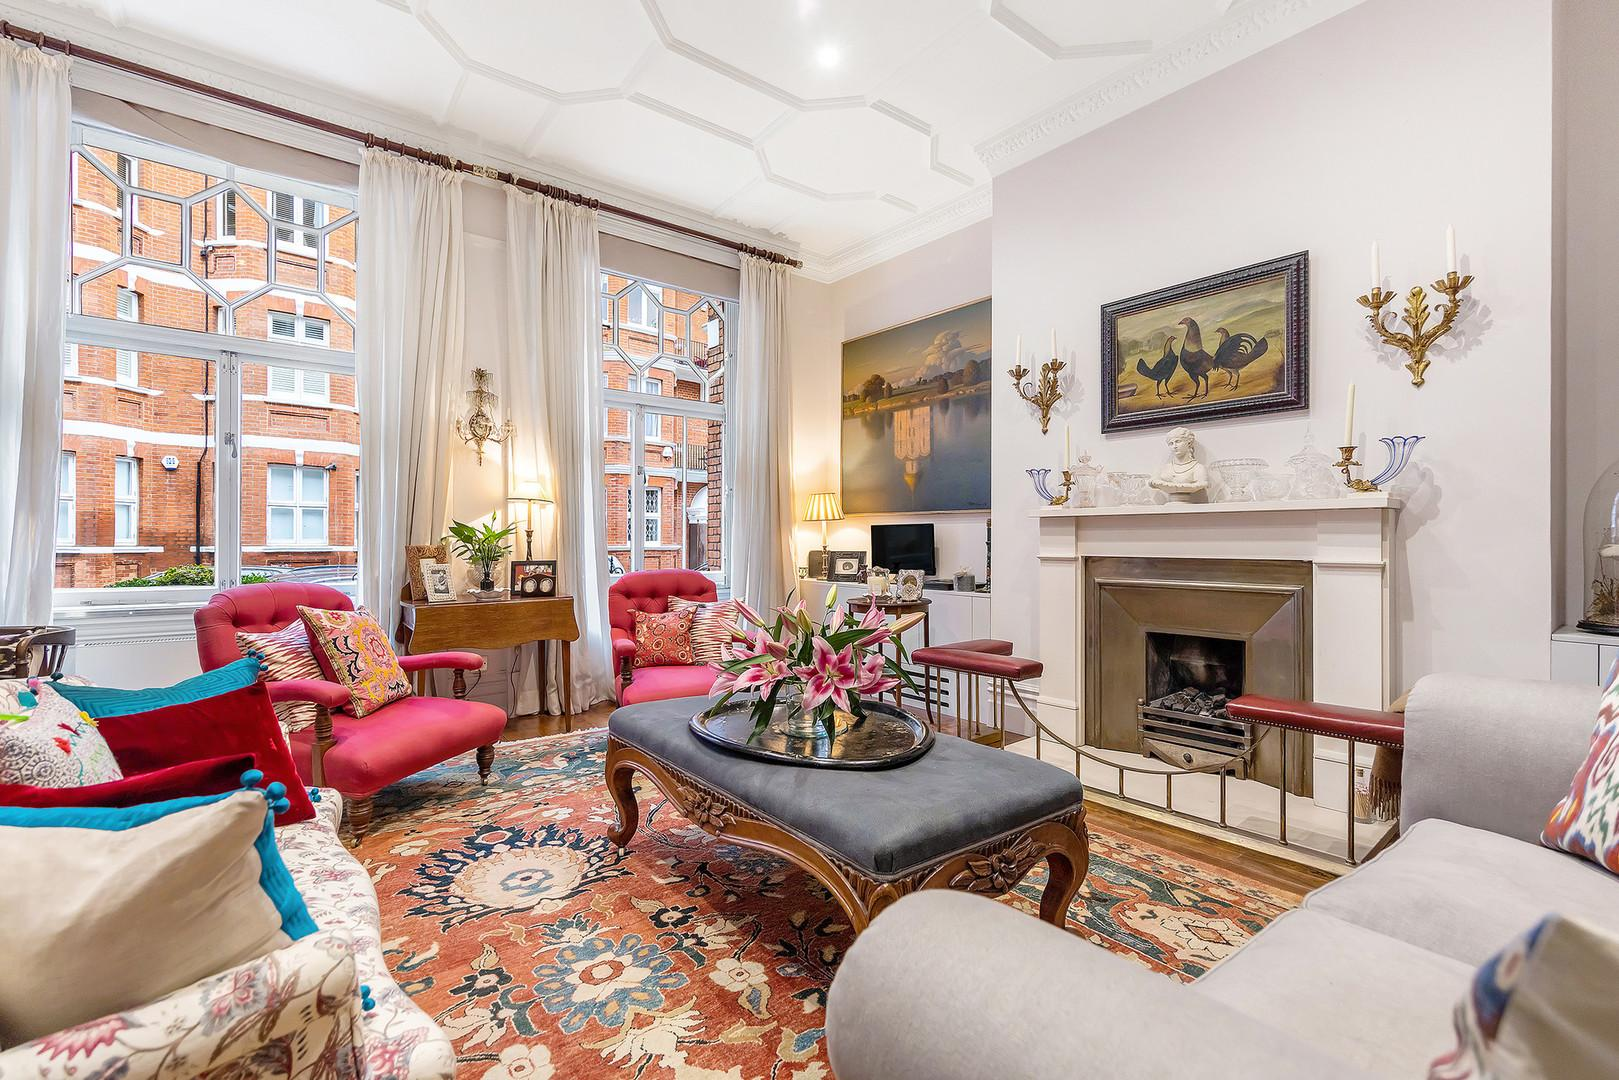 Property Image 2 - Exquisite Apartment in Sloane Square with Great Transport Connections